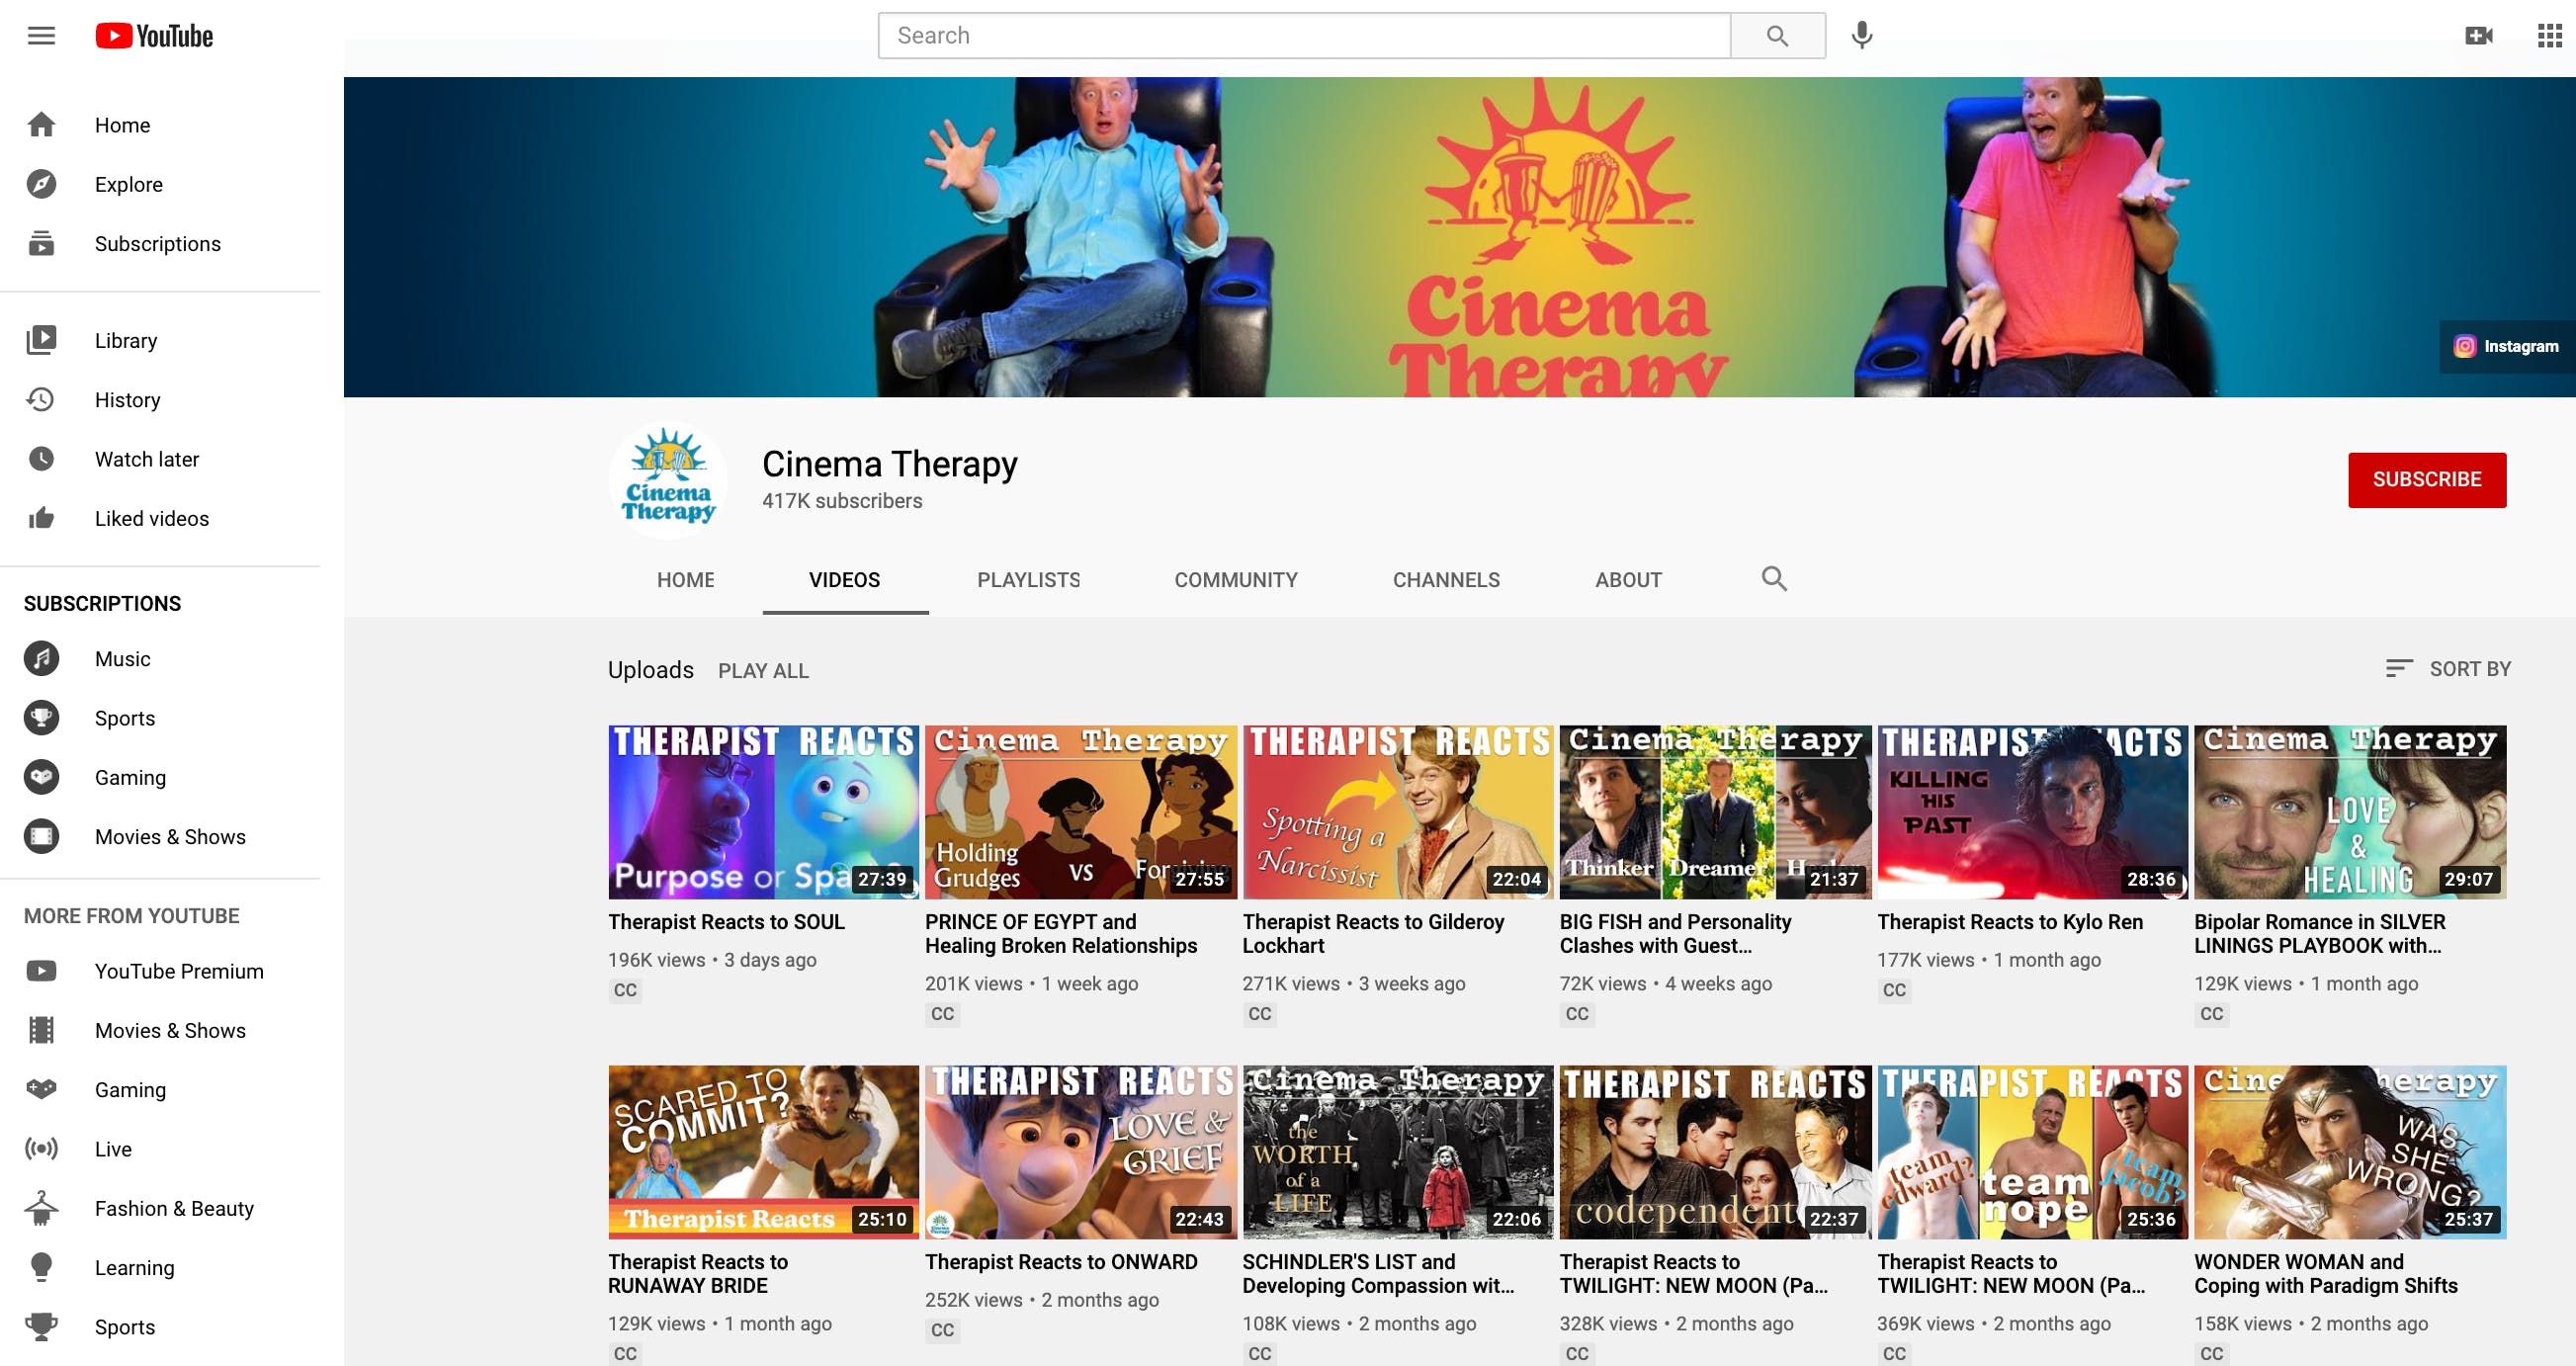 Full list of videos on Cinema Therapy YouTube channel showcasing different styles of thumbnails